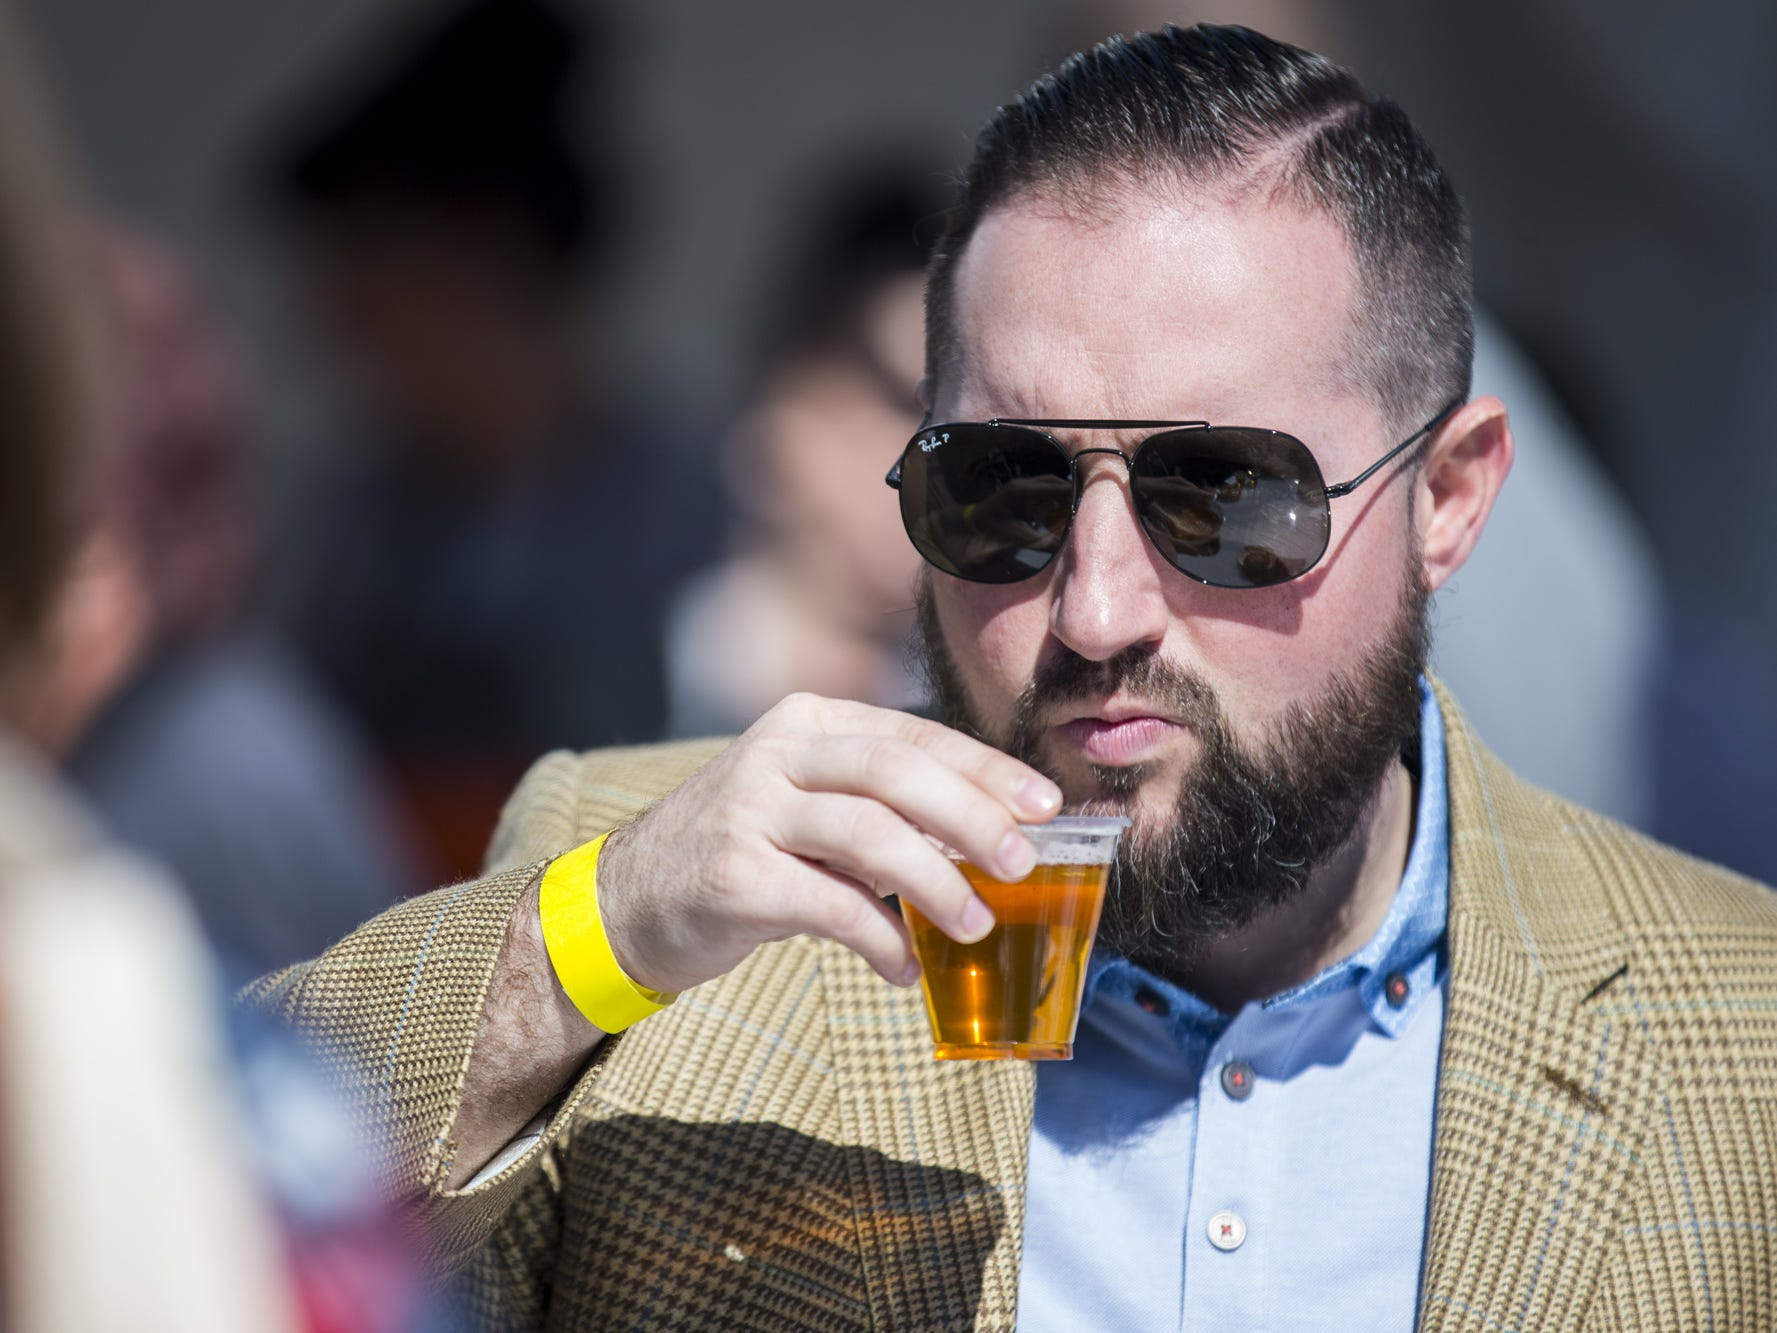 Dom Nelson drinks a beer during Day 1 of the Devour Culinary Classic on Saturday, Feb. 23, 2019, at Desert Botanical Garden in Phoenix.